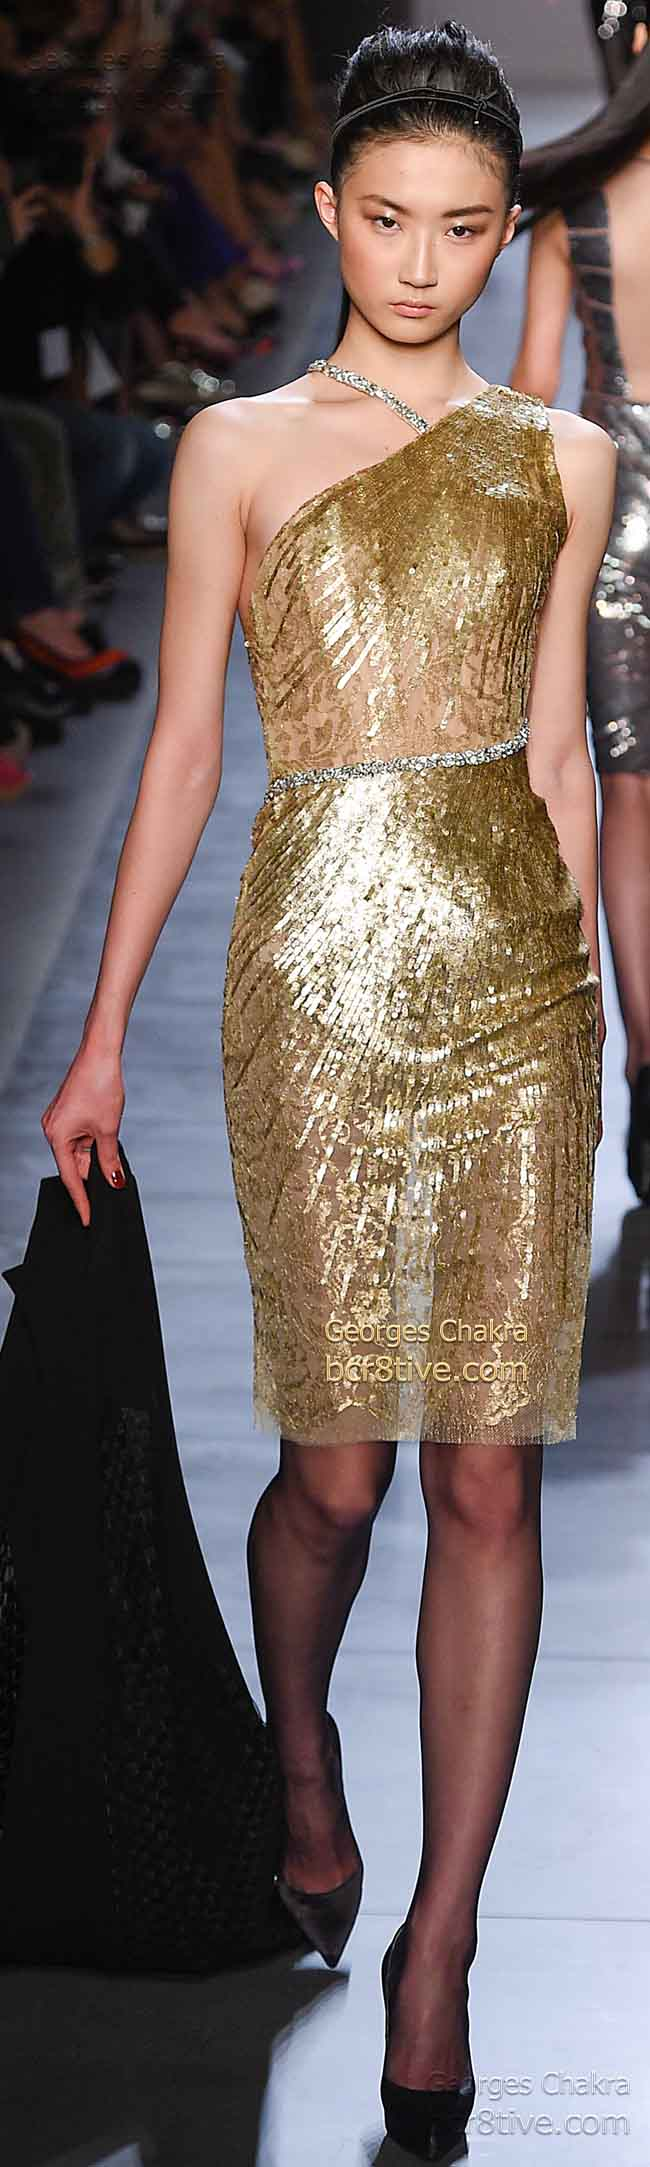 Delicate Gold Beading and Sequins